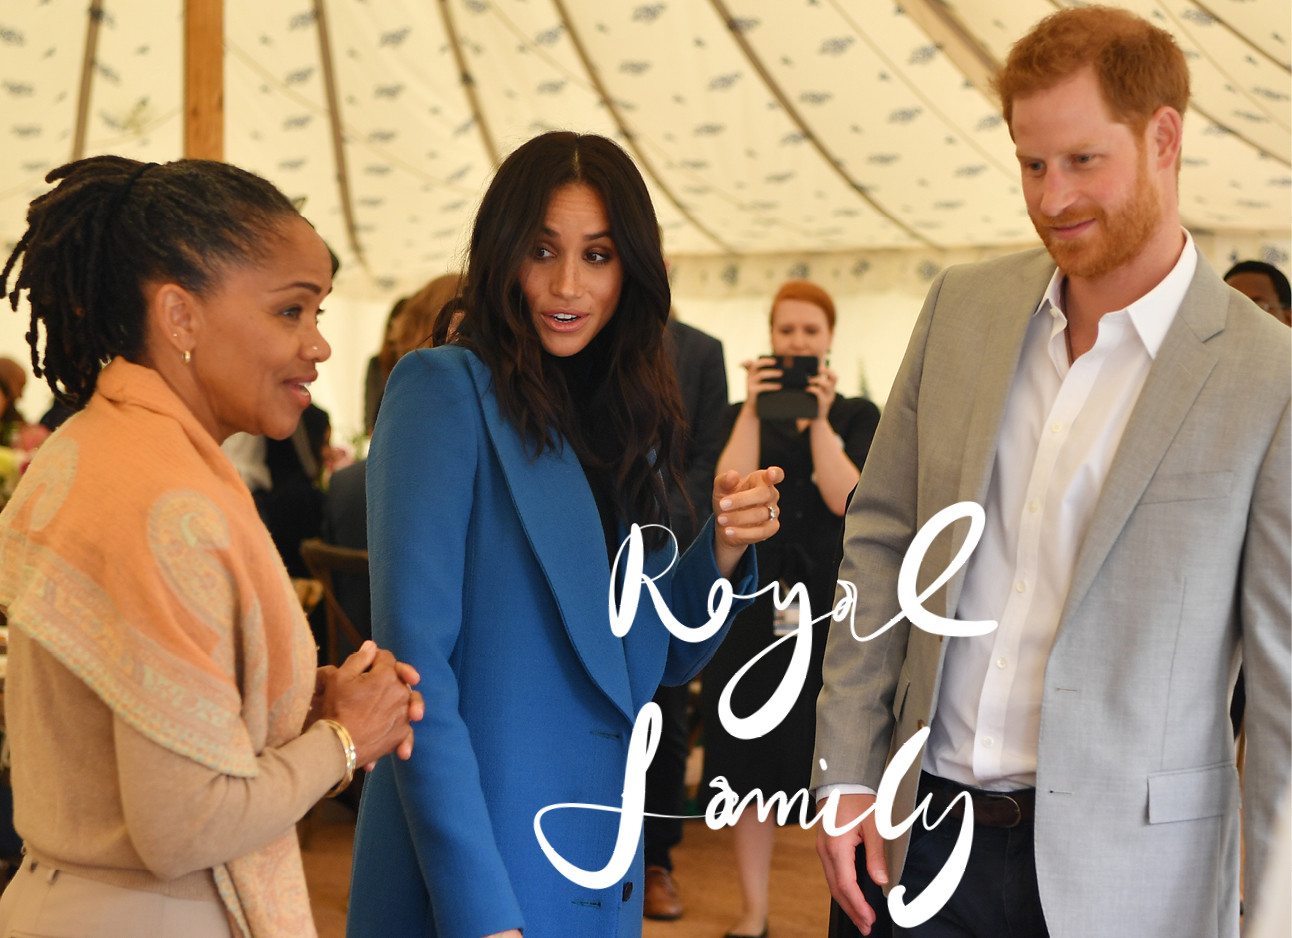 meghan markle, prins harry en meghan's moeder, royal family